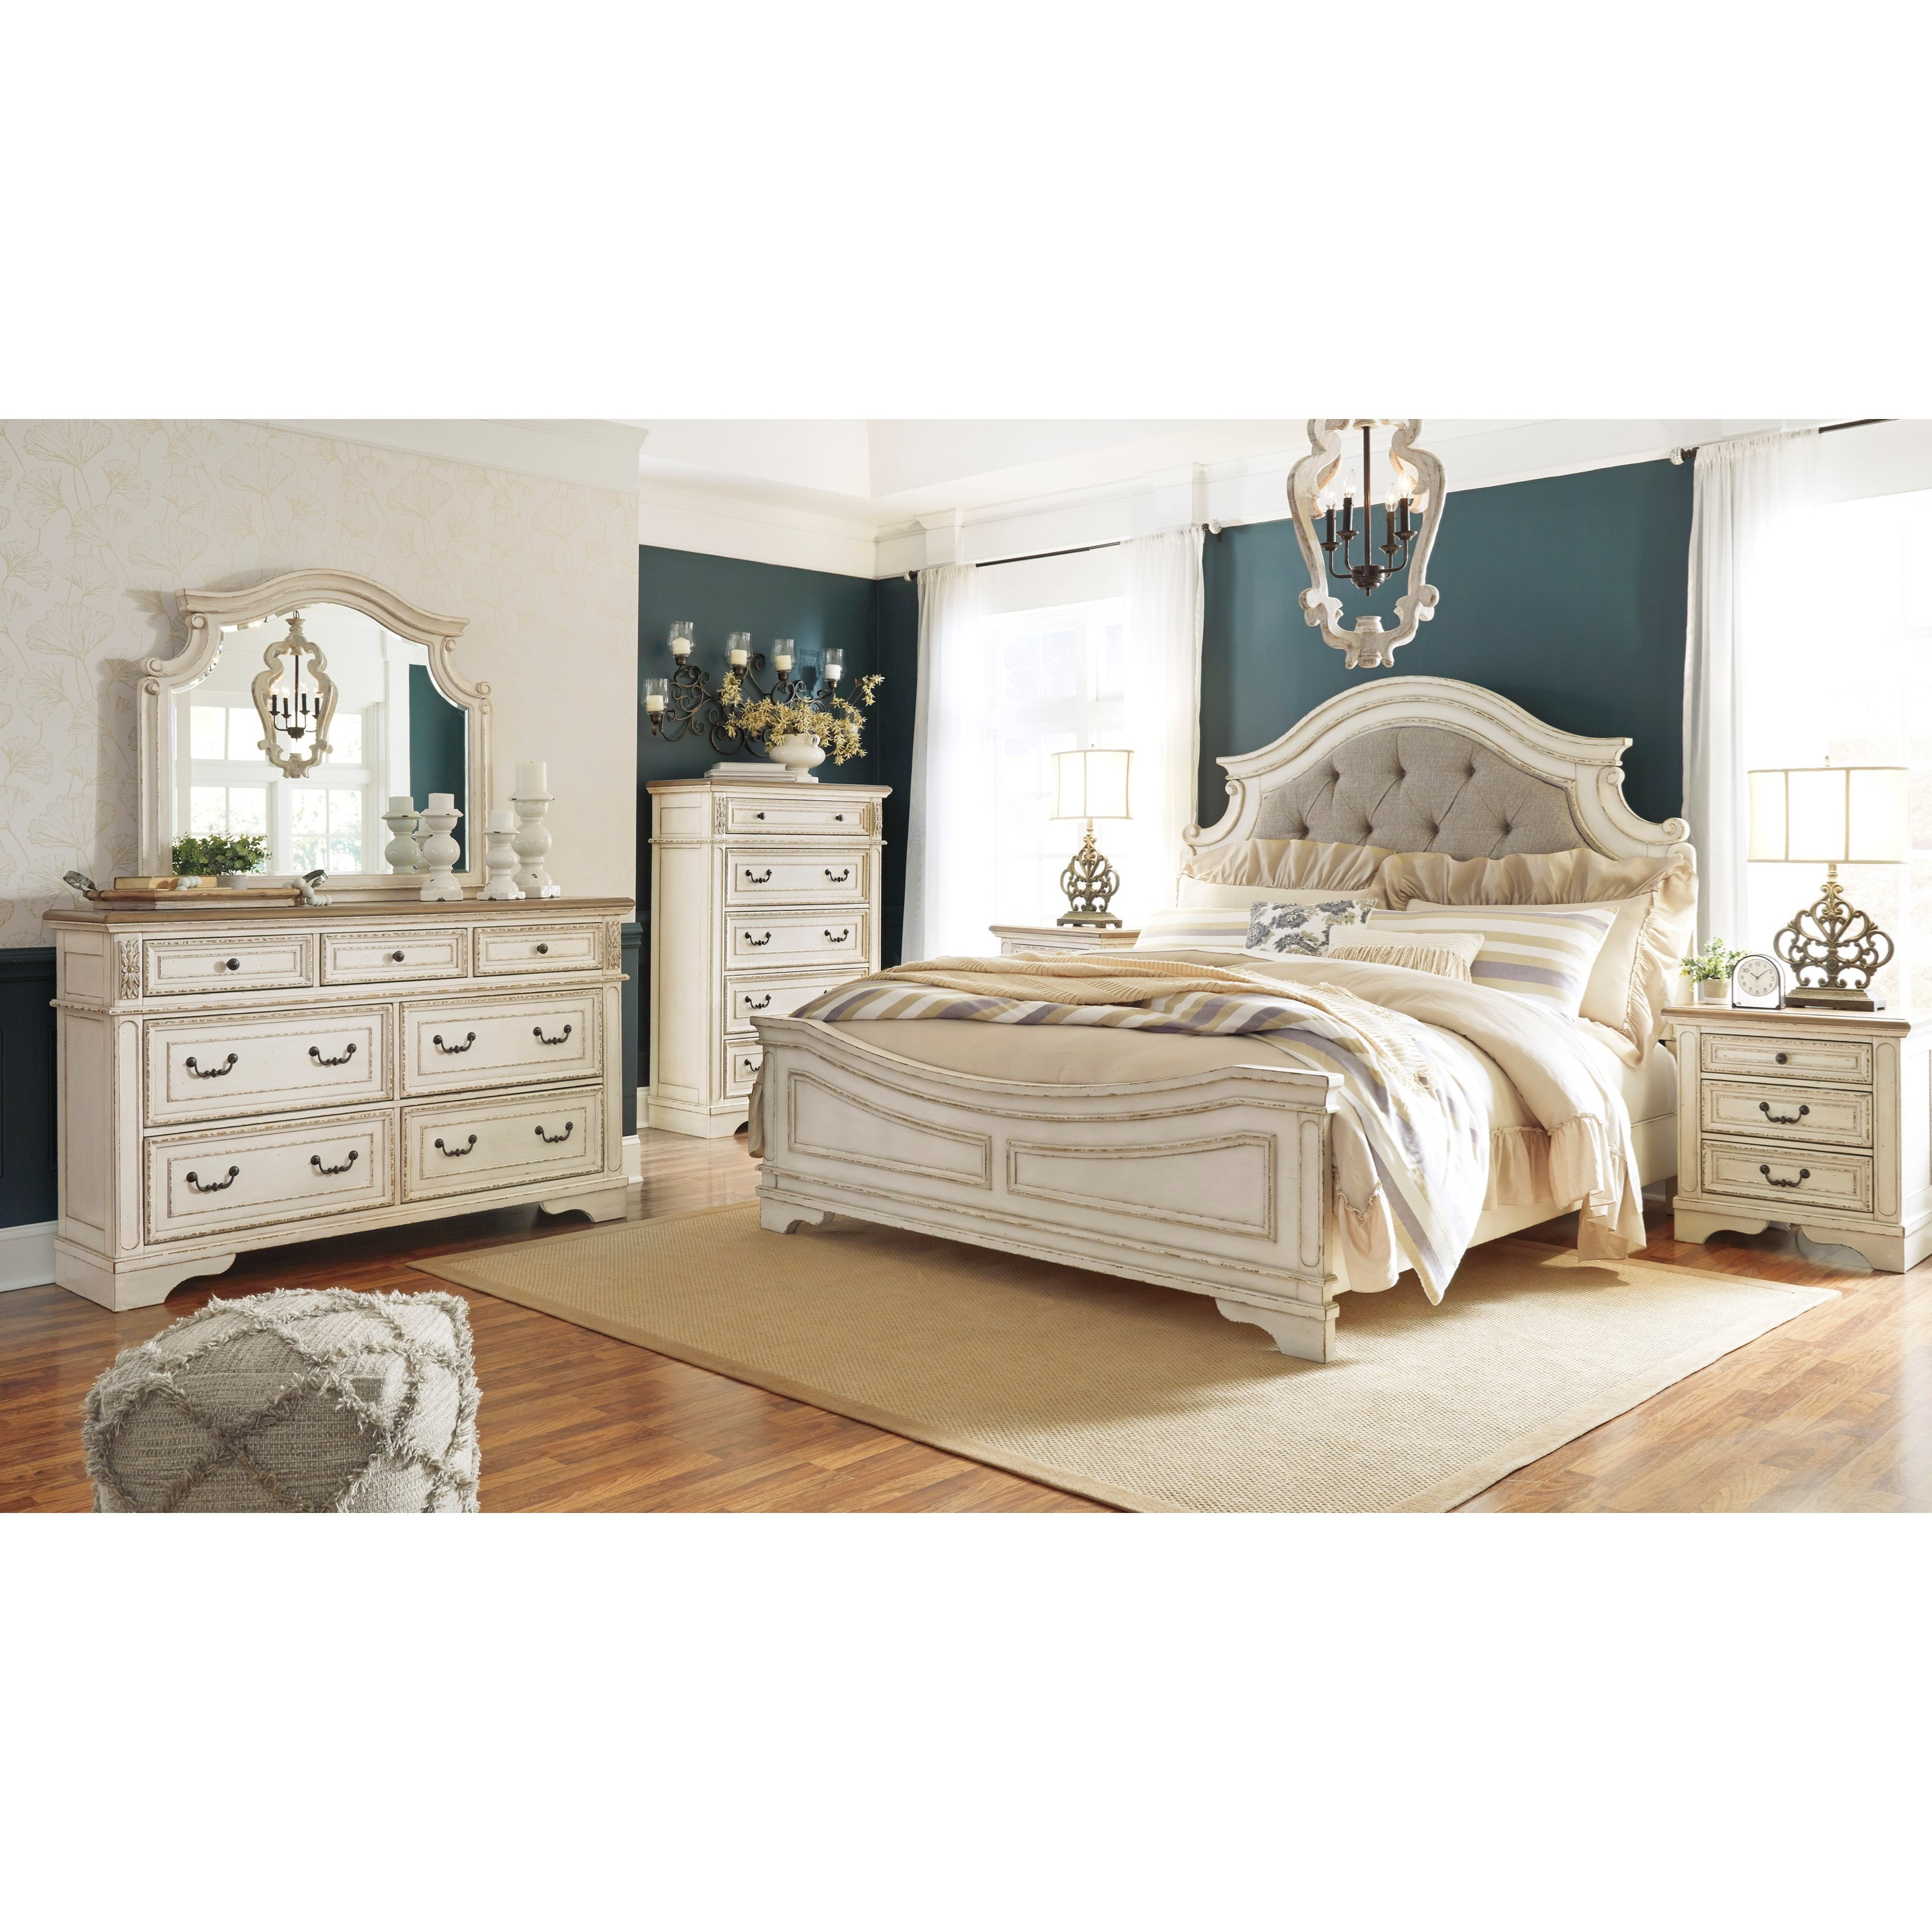 Two Bedroom Set Signature Design By Ashley Realyn Queen Bedroom Group